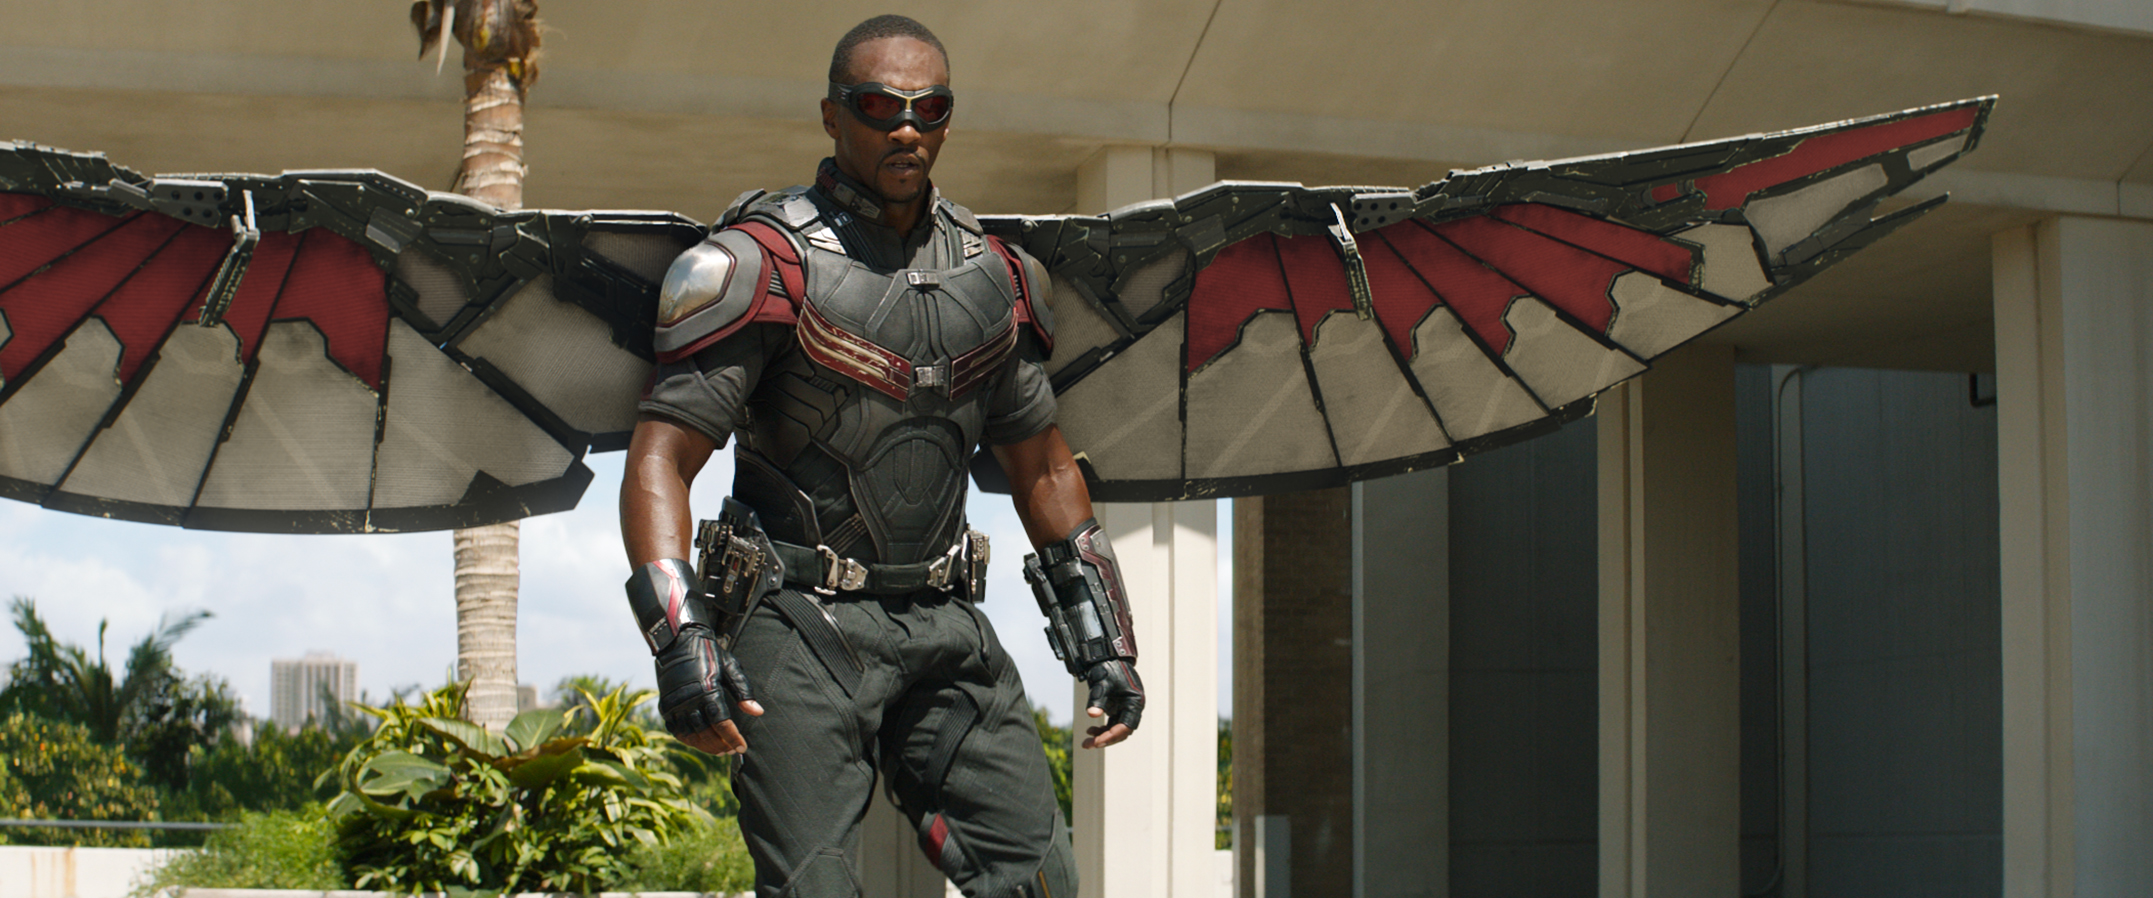 Marvel's Captain America: Civil War..Falcon/Sam Wilson (Anthony Mackie)..Photo Credit: Film Frame..© Marvel 2016